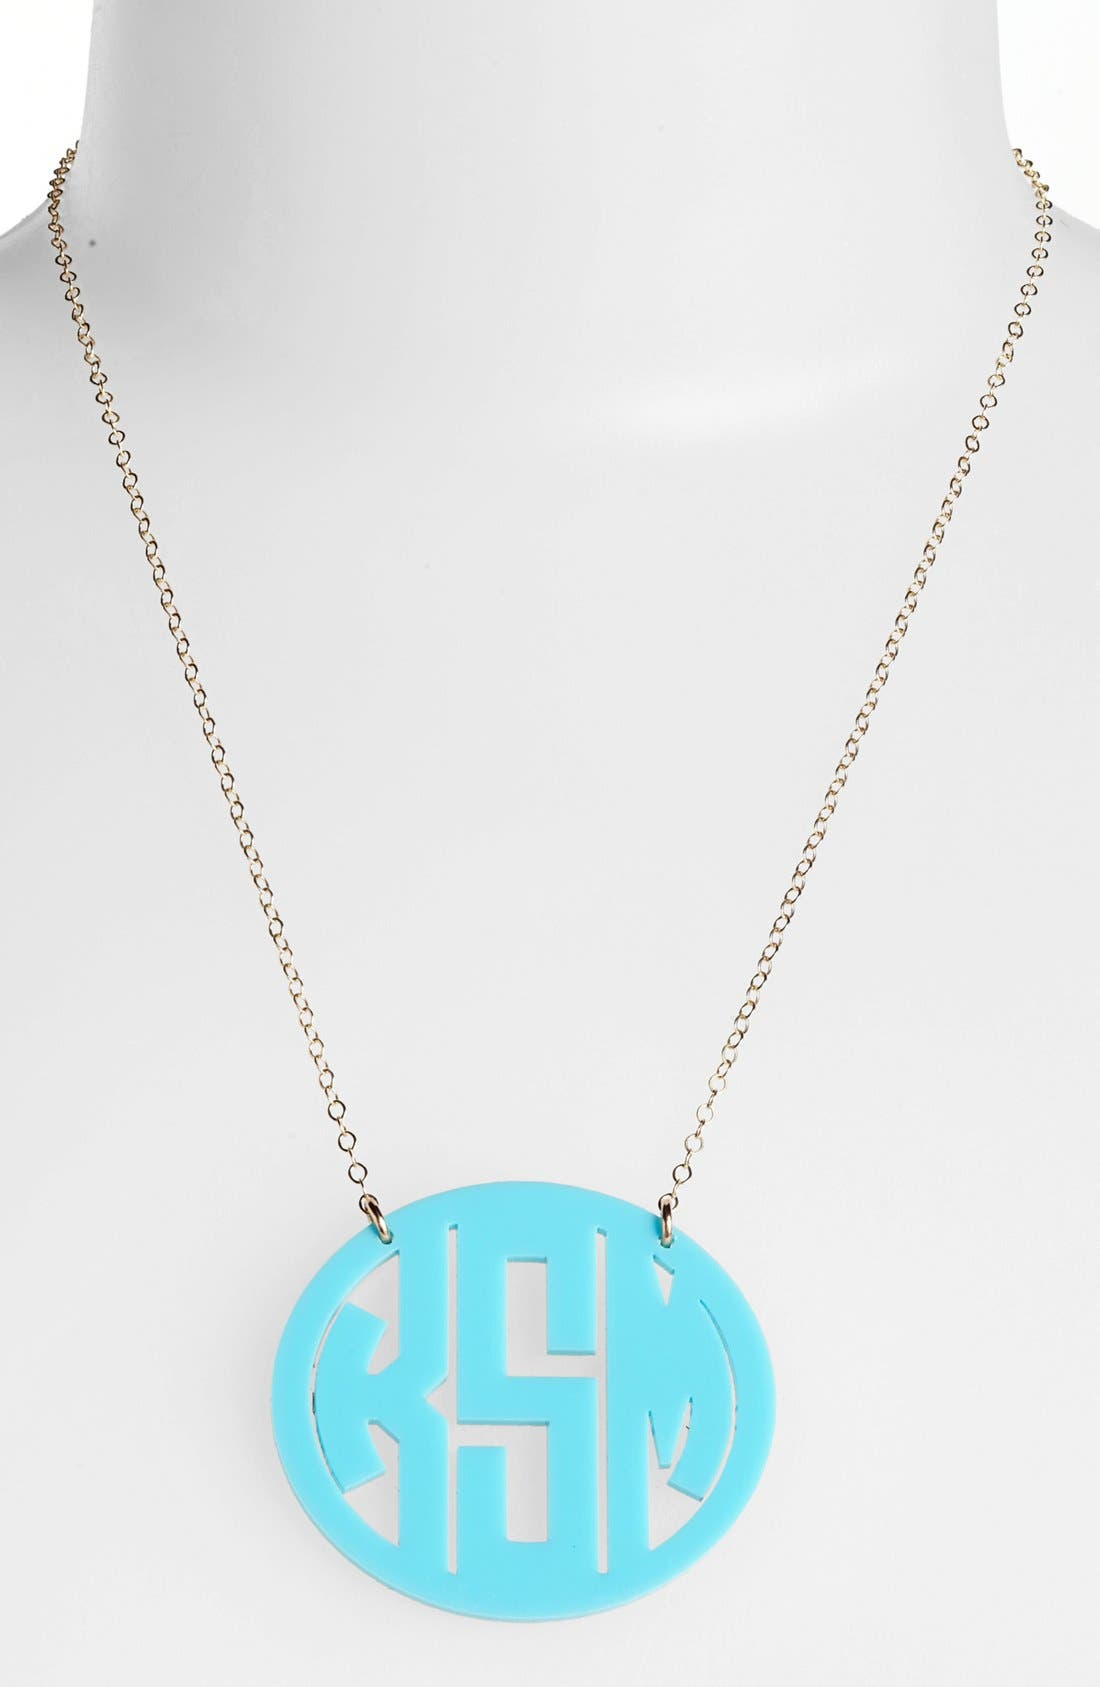 Alternate Image 1 Selected - Moon and Lola Large Oval Personalized Monogram Pendant Necklace (Nordstrom Exclusive)